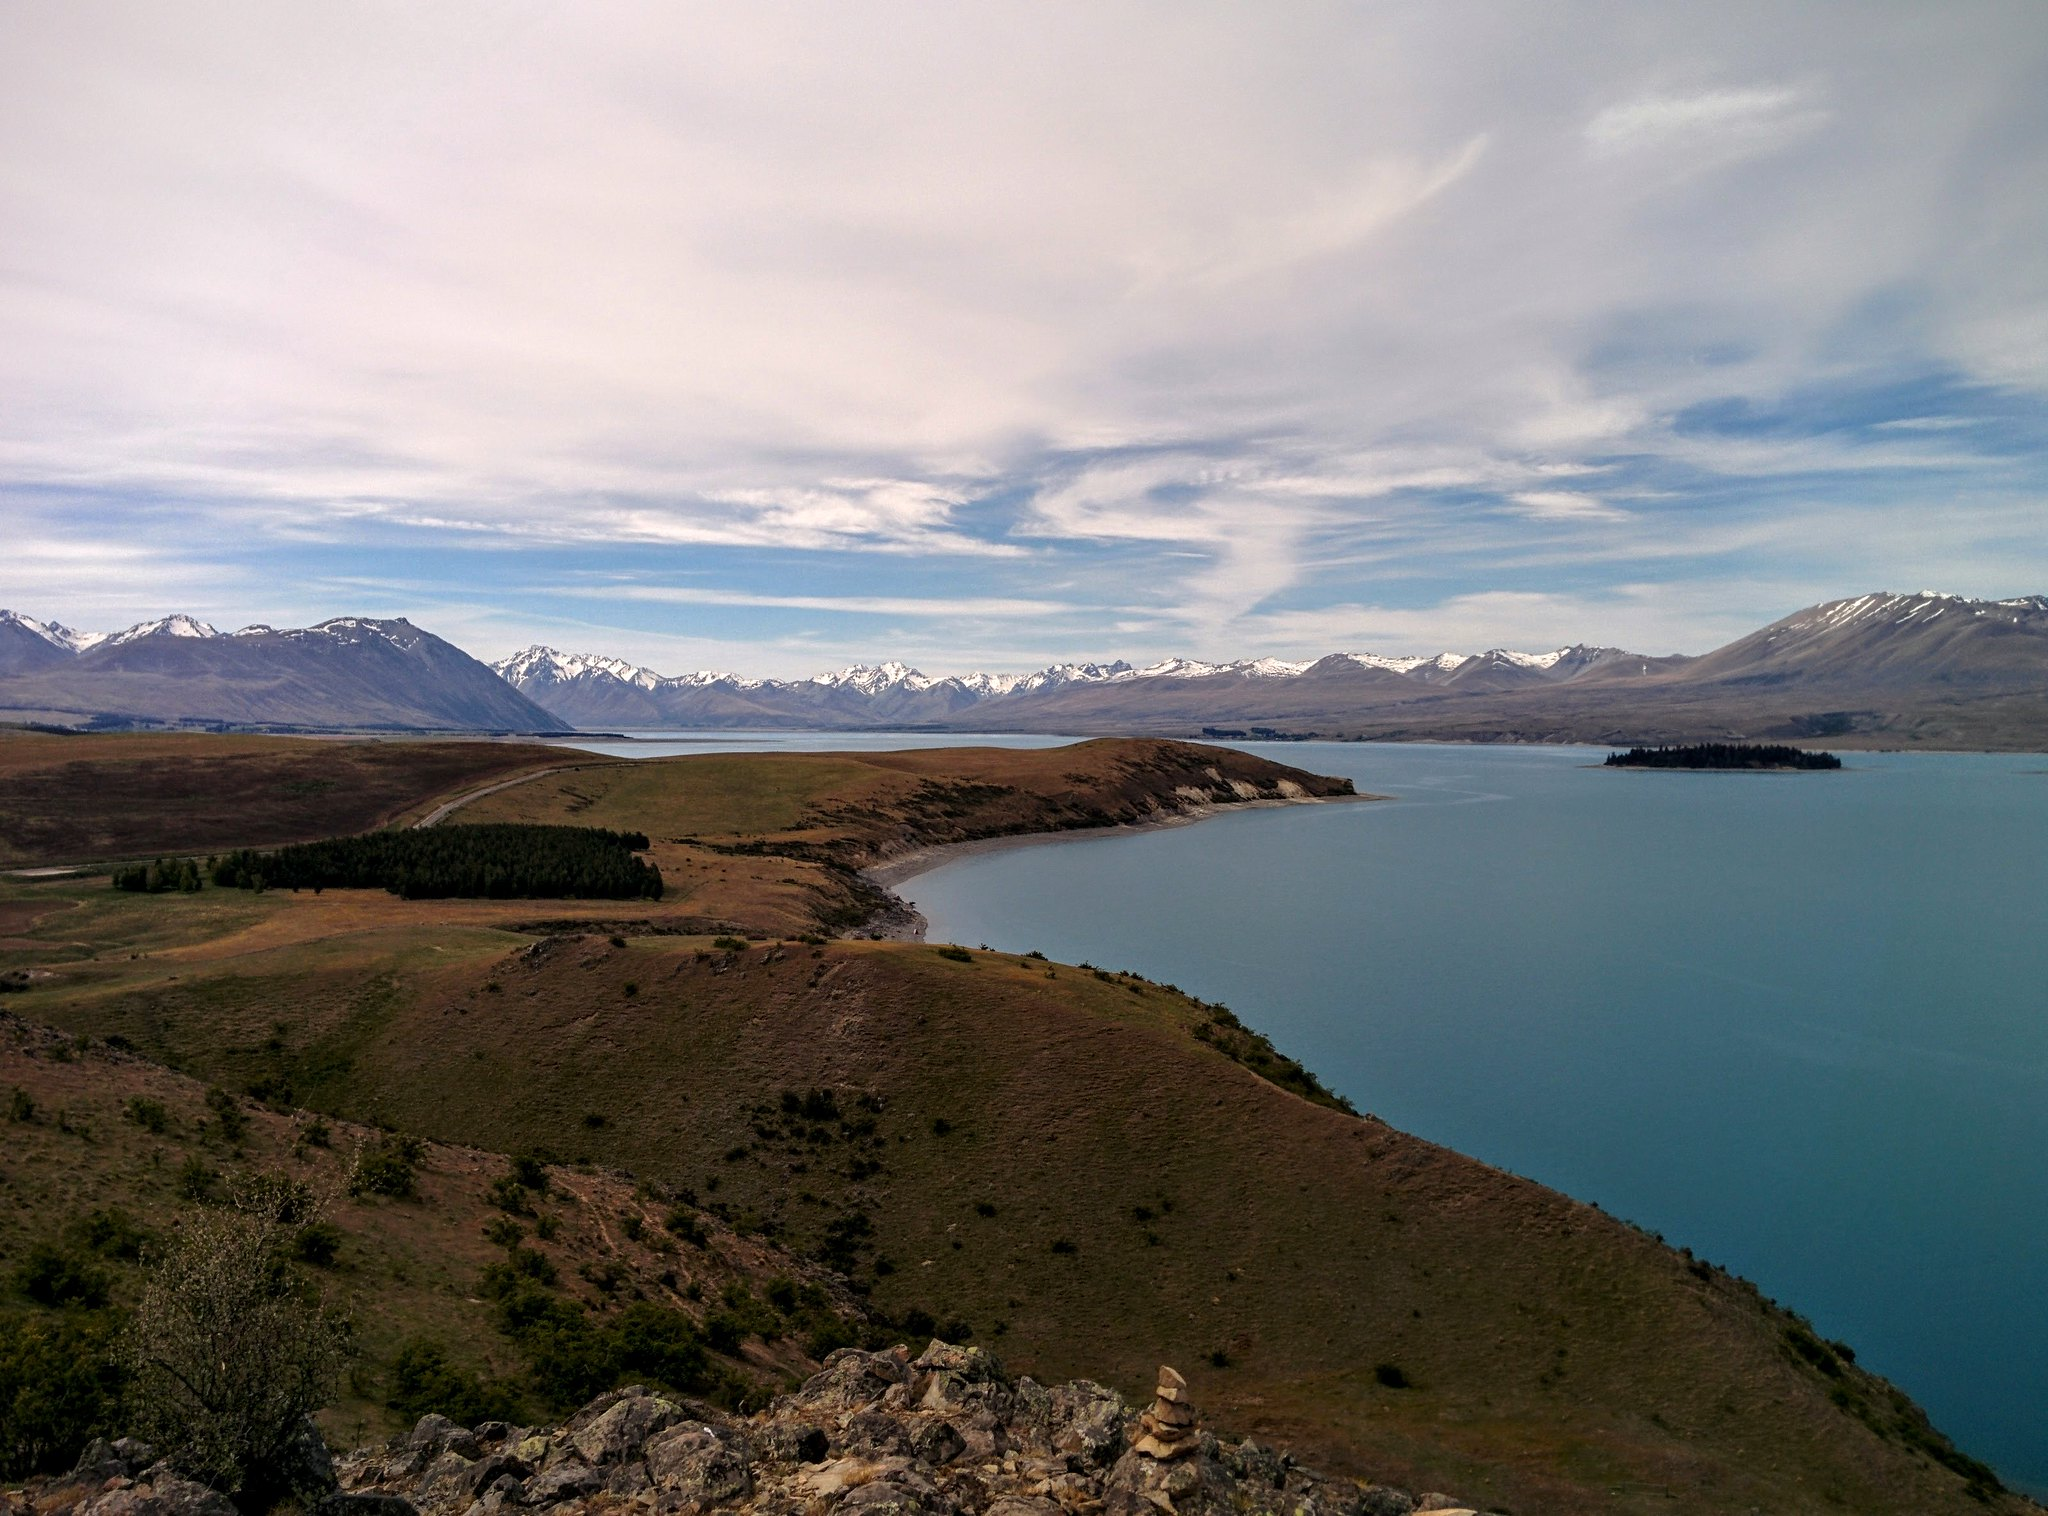 Lake Tekapo from the highpoint of trail